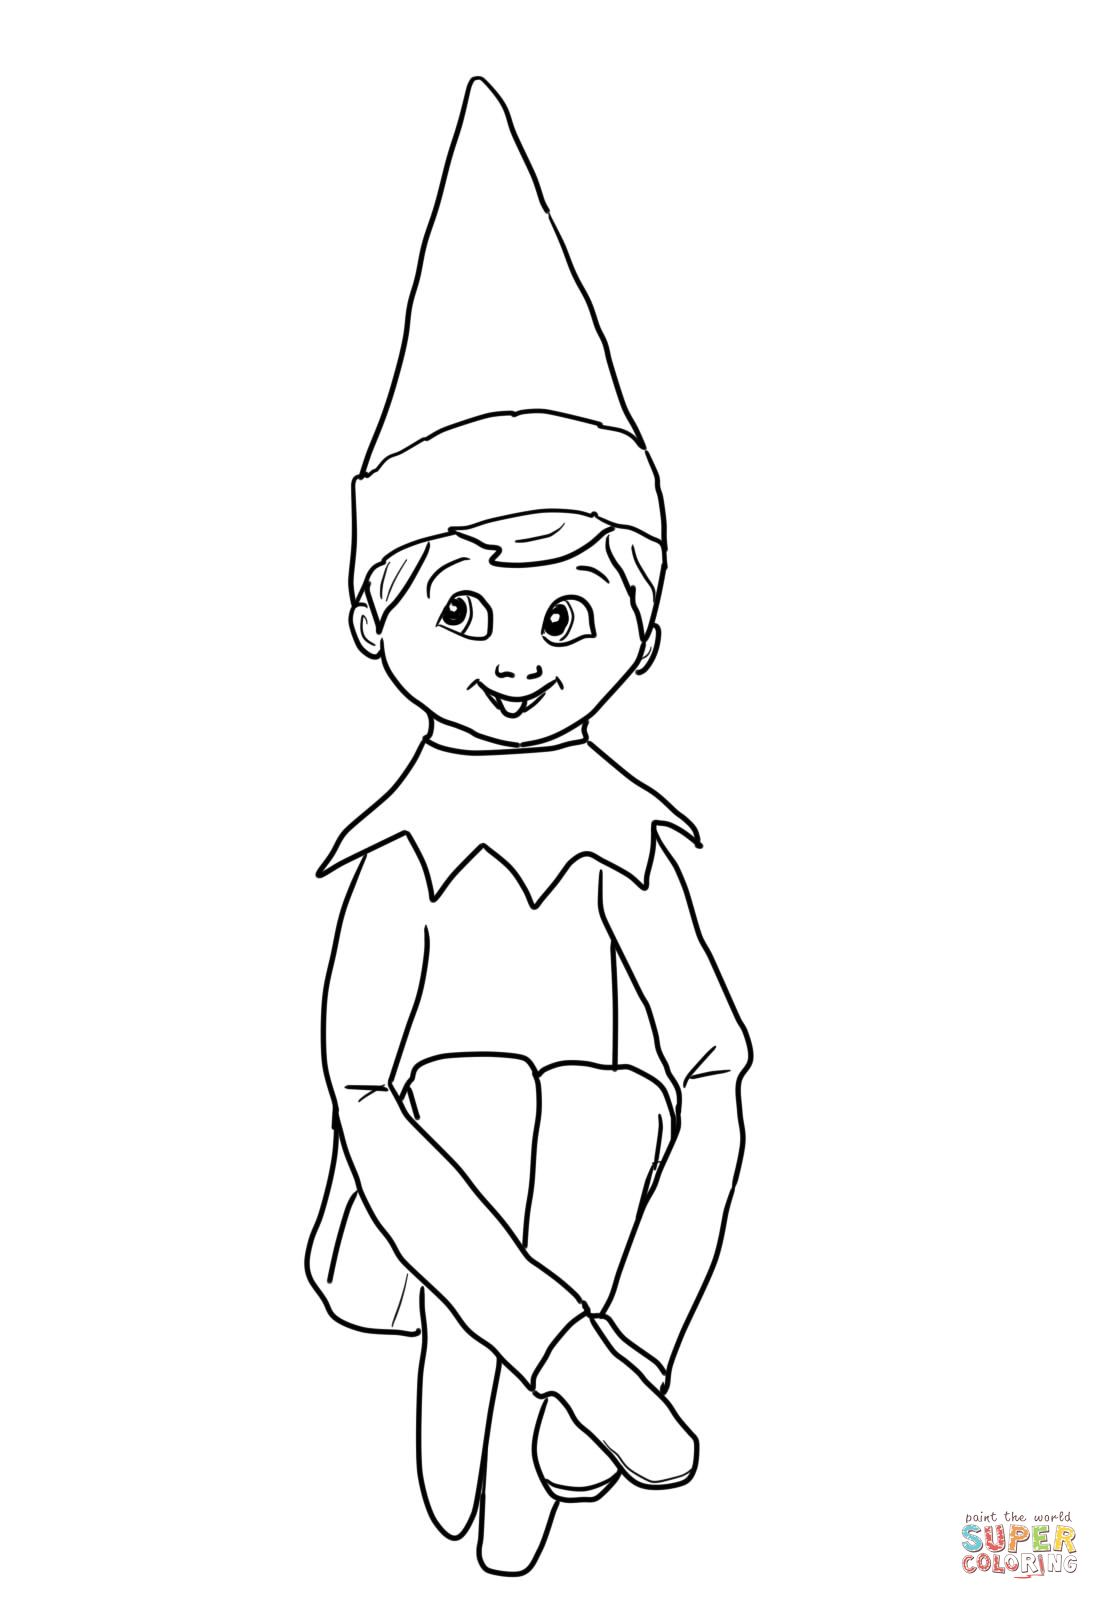 Christmas Coloring Pages Elf On The Shelf With Girl You Might Also Be Interested